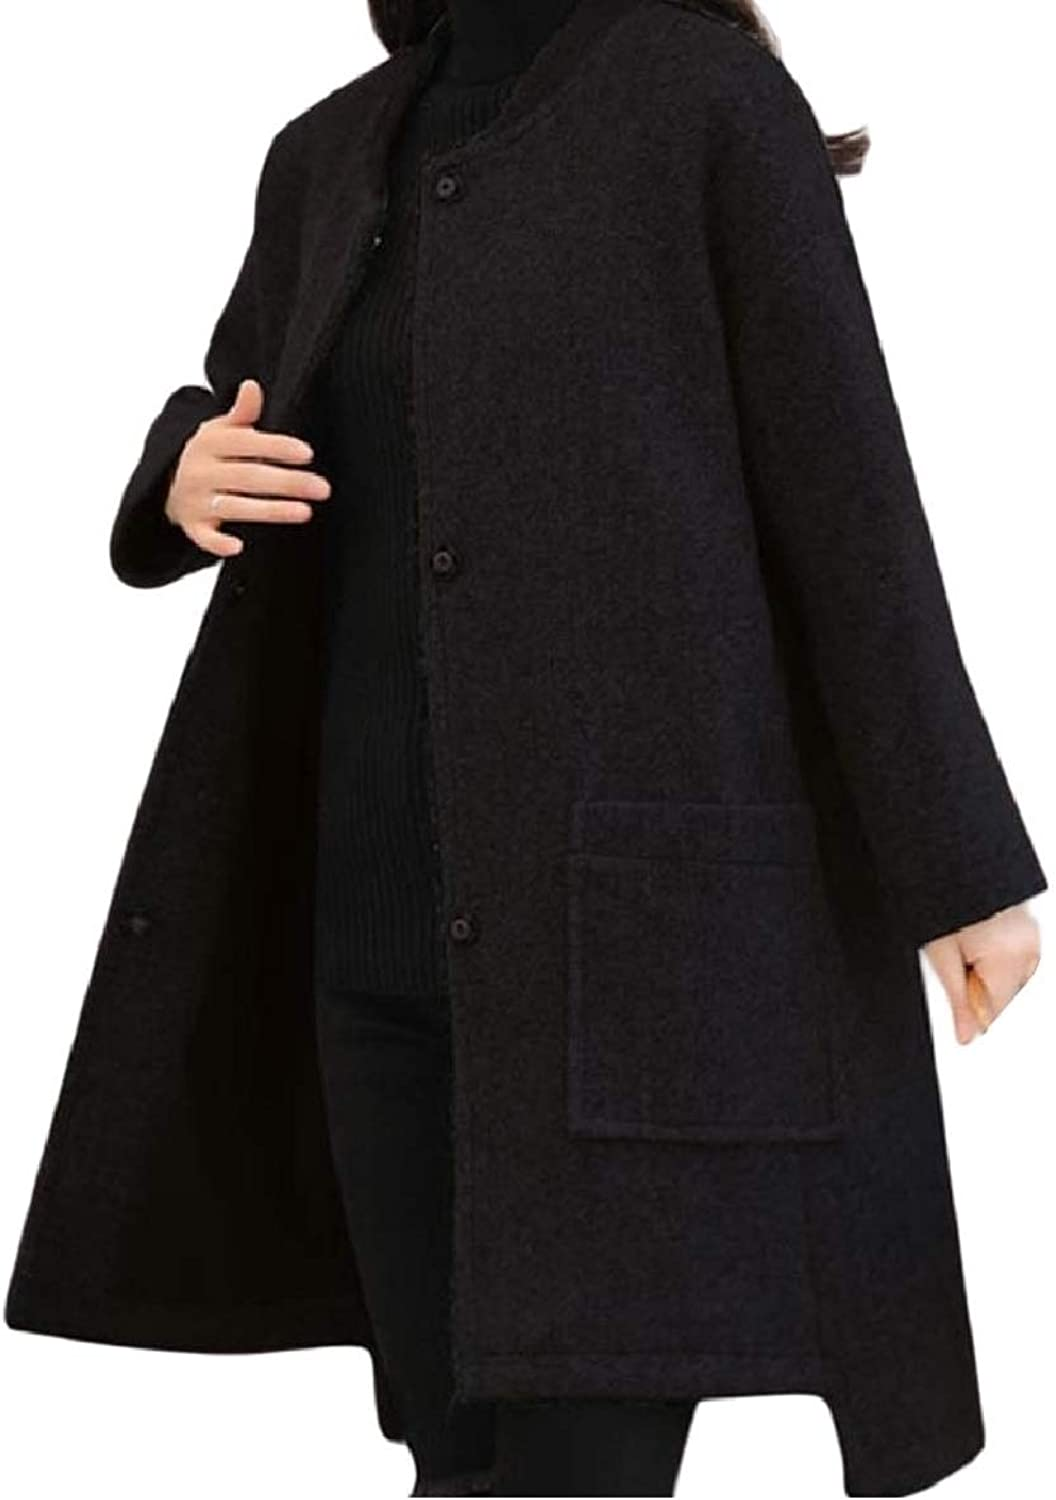 Winme Women's Outwear Wool Blend Fall Winter Loose Casual Parka Jacket